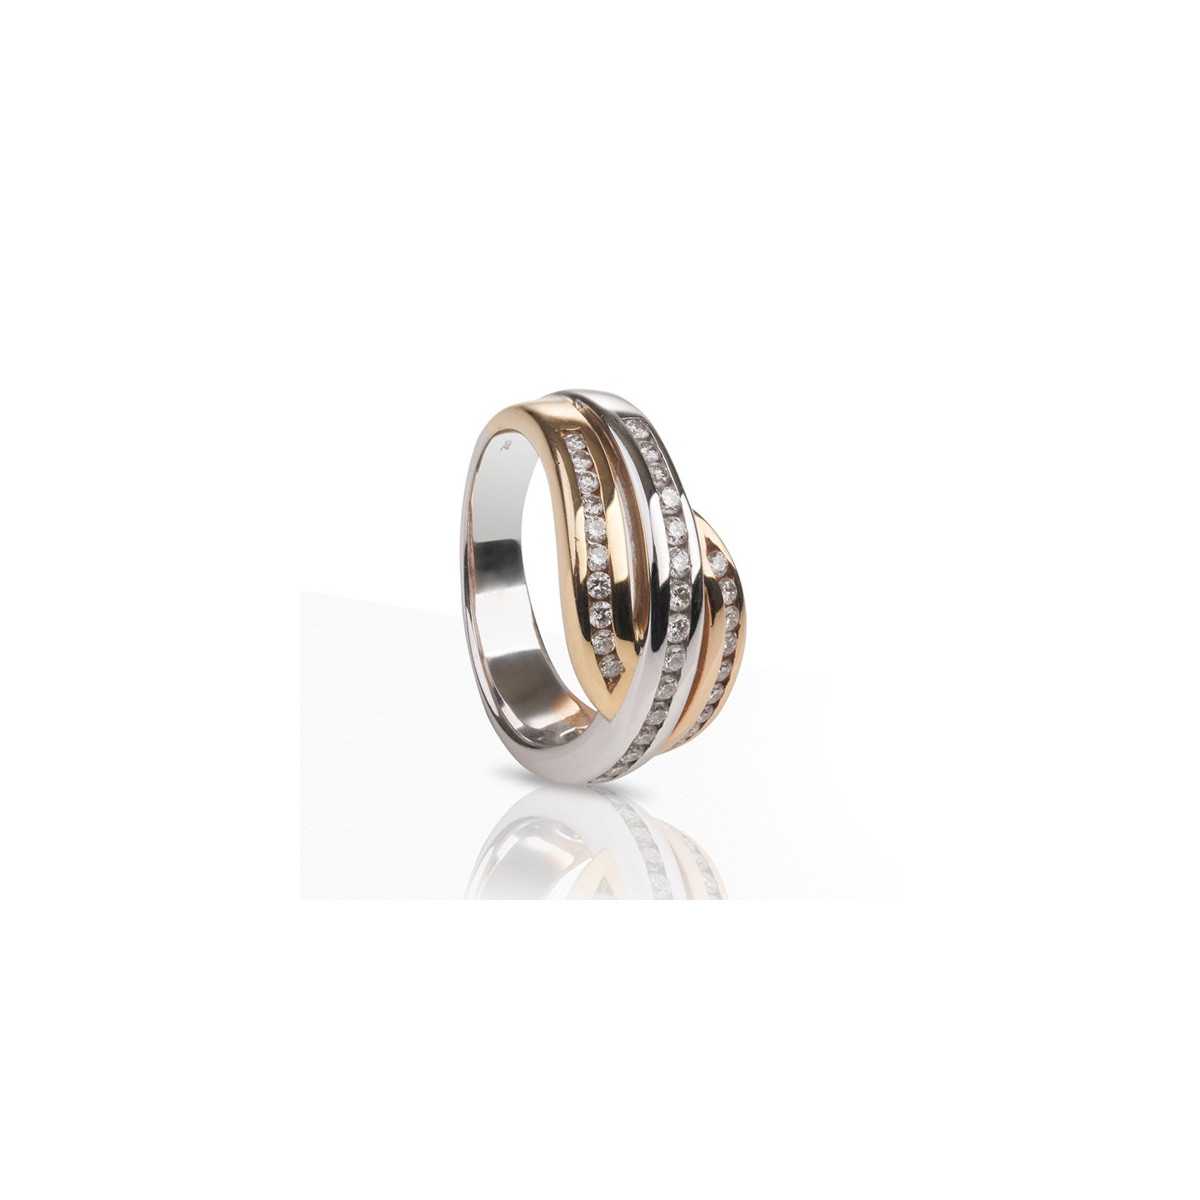 3 COLORS GOLD RING WITH DIAMONDS